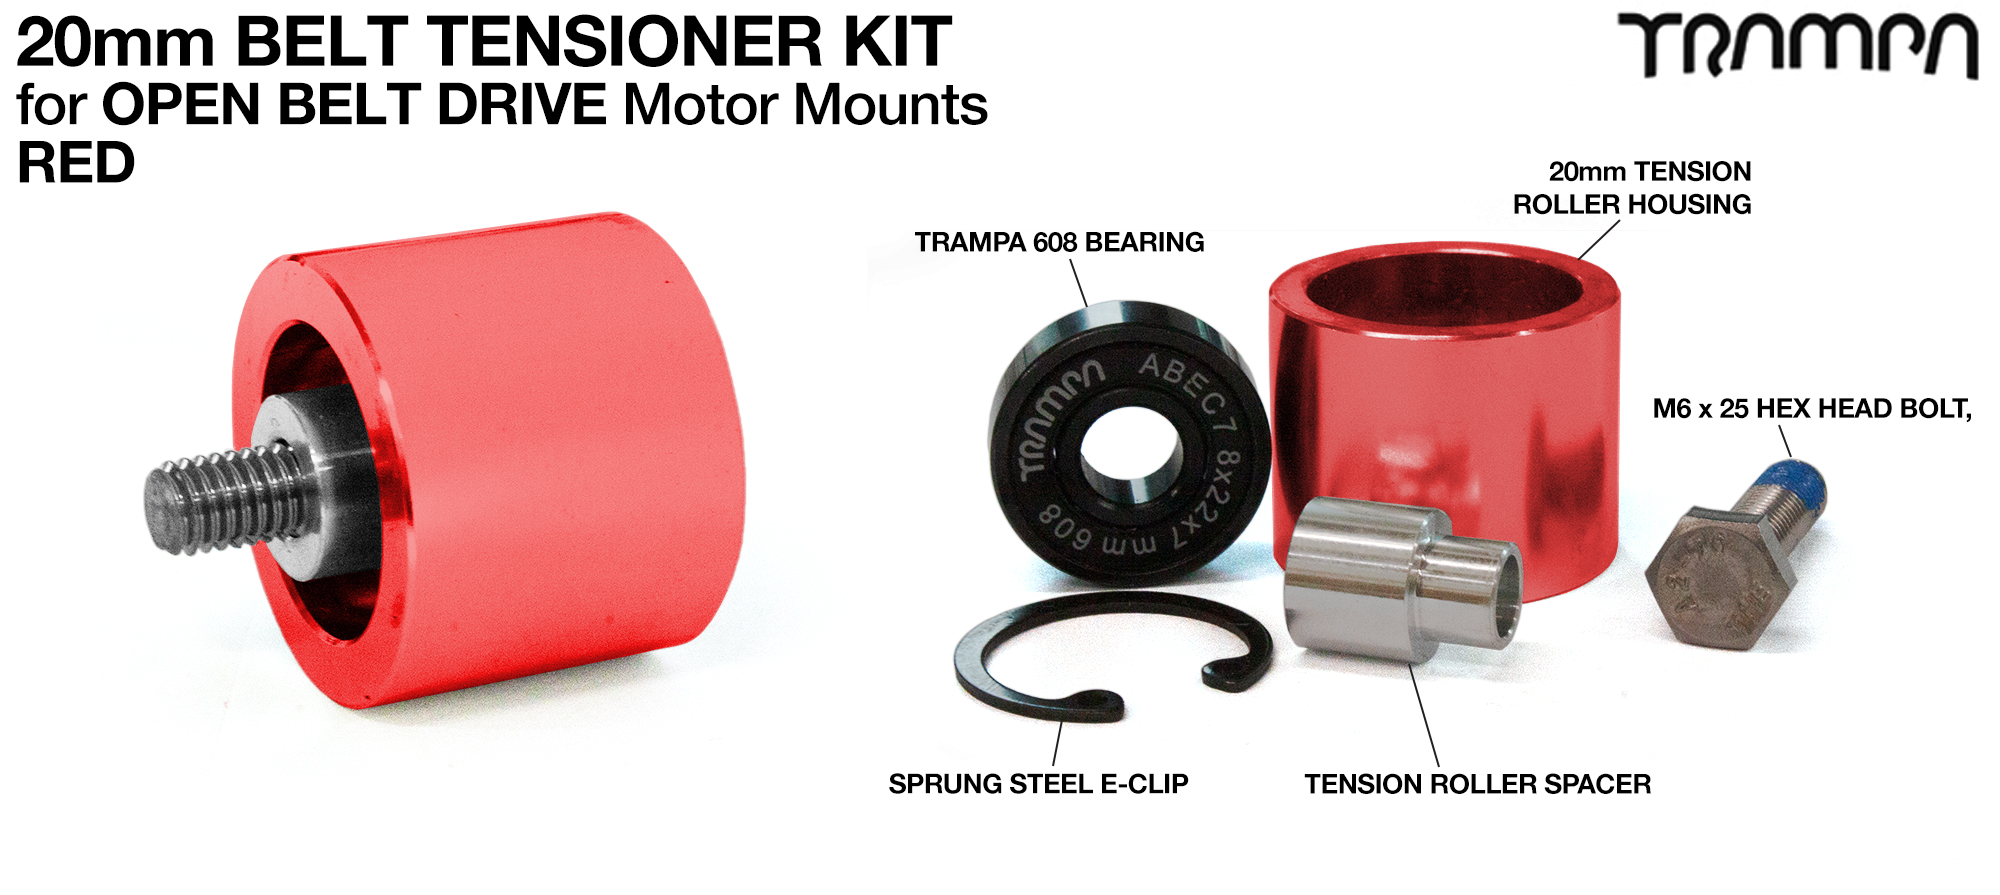 RED OBD 20mm Belt Tensioner